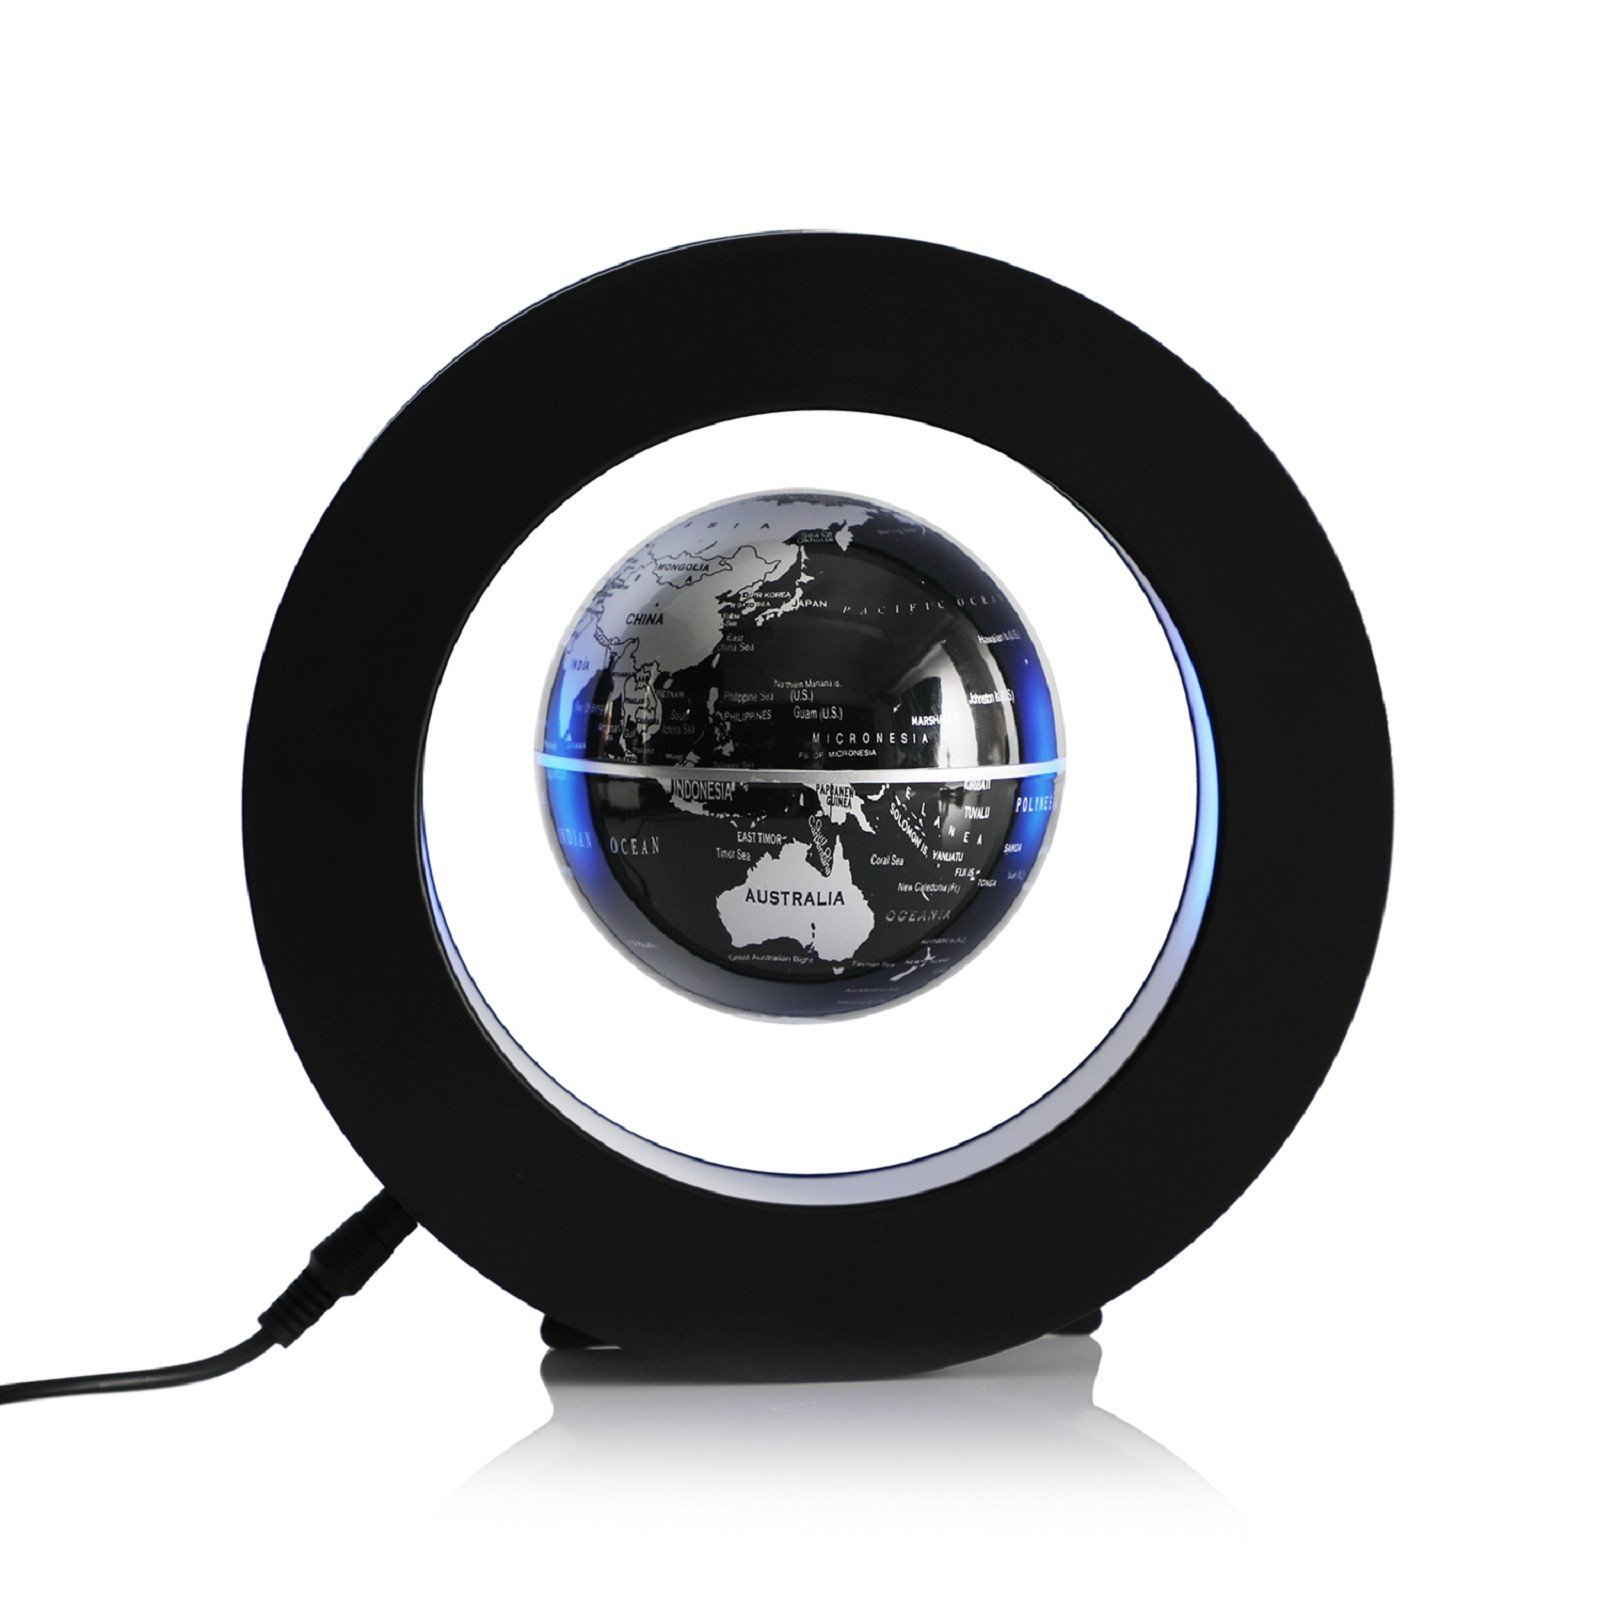 MZS Tec Christmas Decorations, Floating Globe, Magnetic Levitating Globe, World Map Globe With Led Light Suspended In Air, Office Decor (Black)